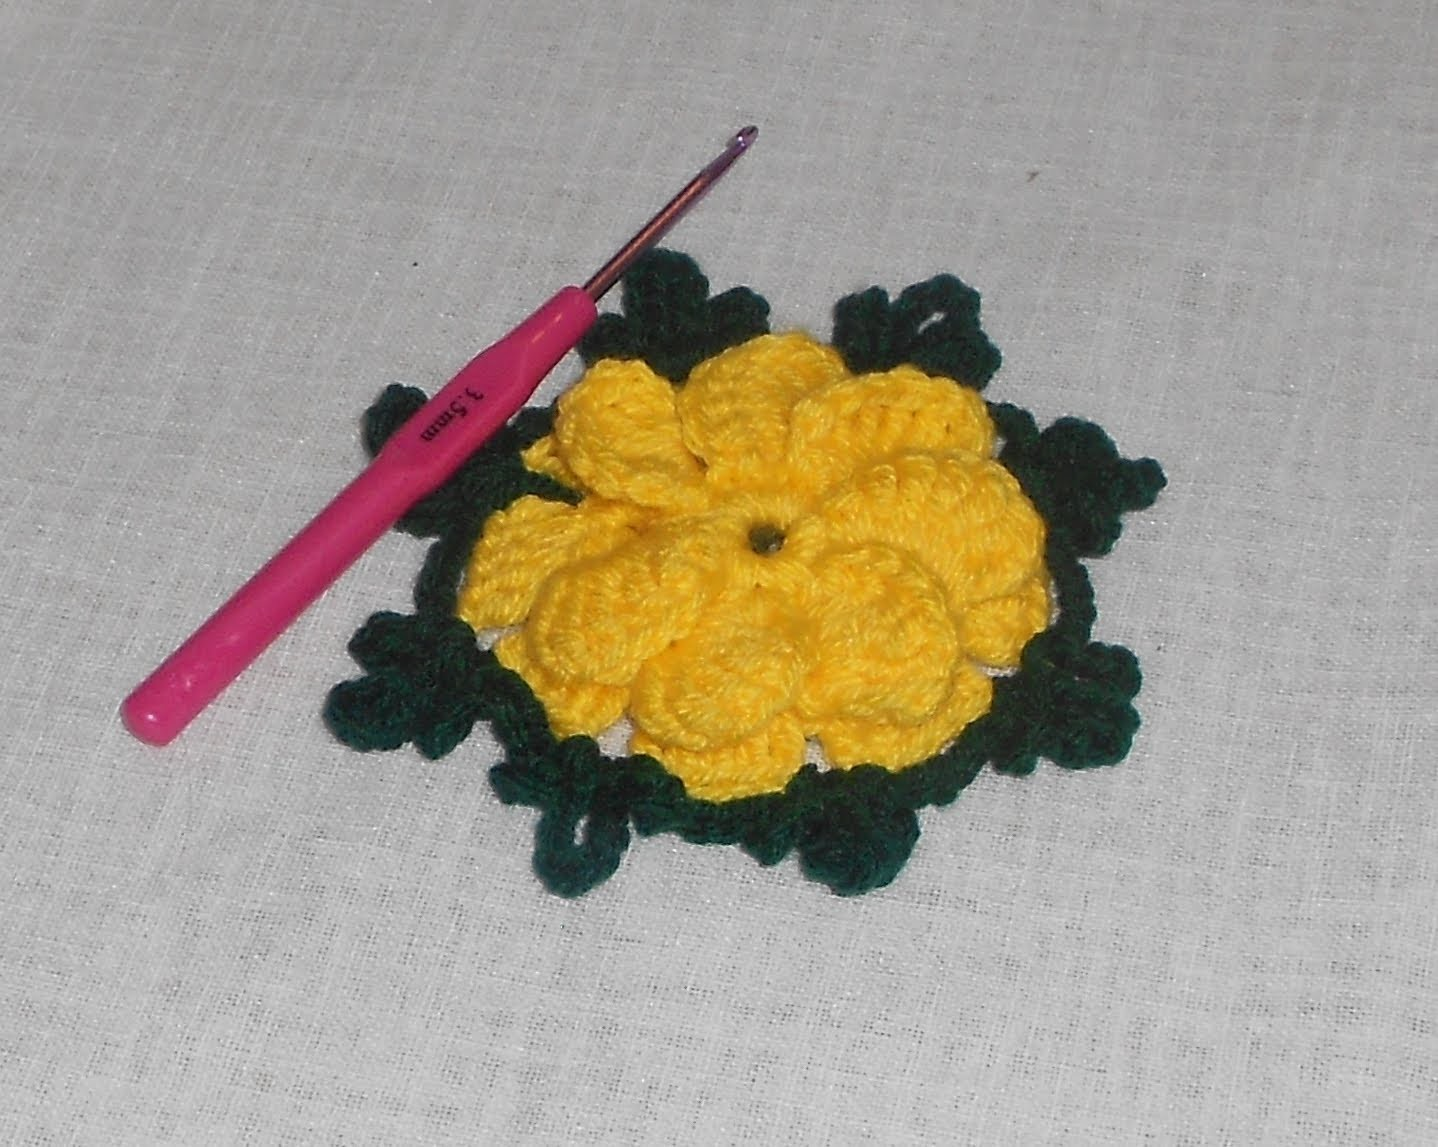 Uncinetto crochet fiore Bell - how to crochet flower - ganchillo flor